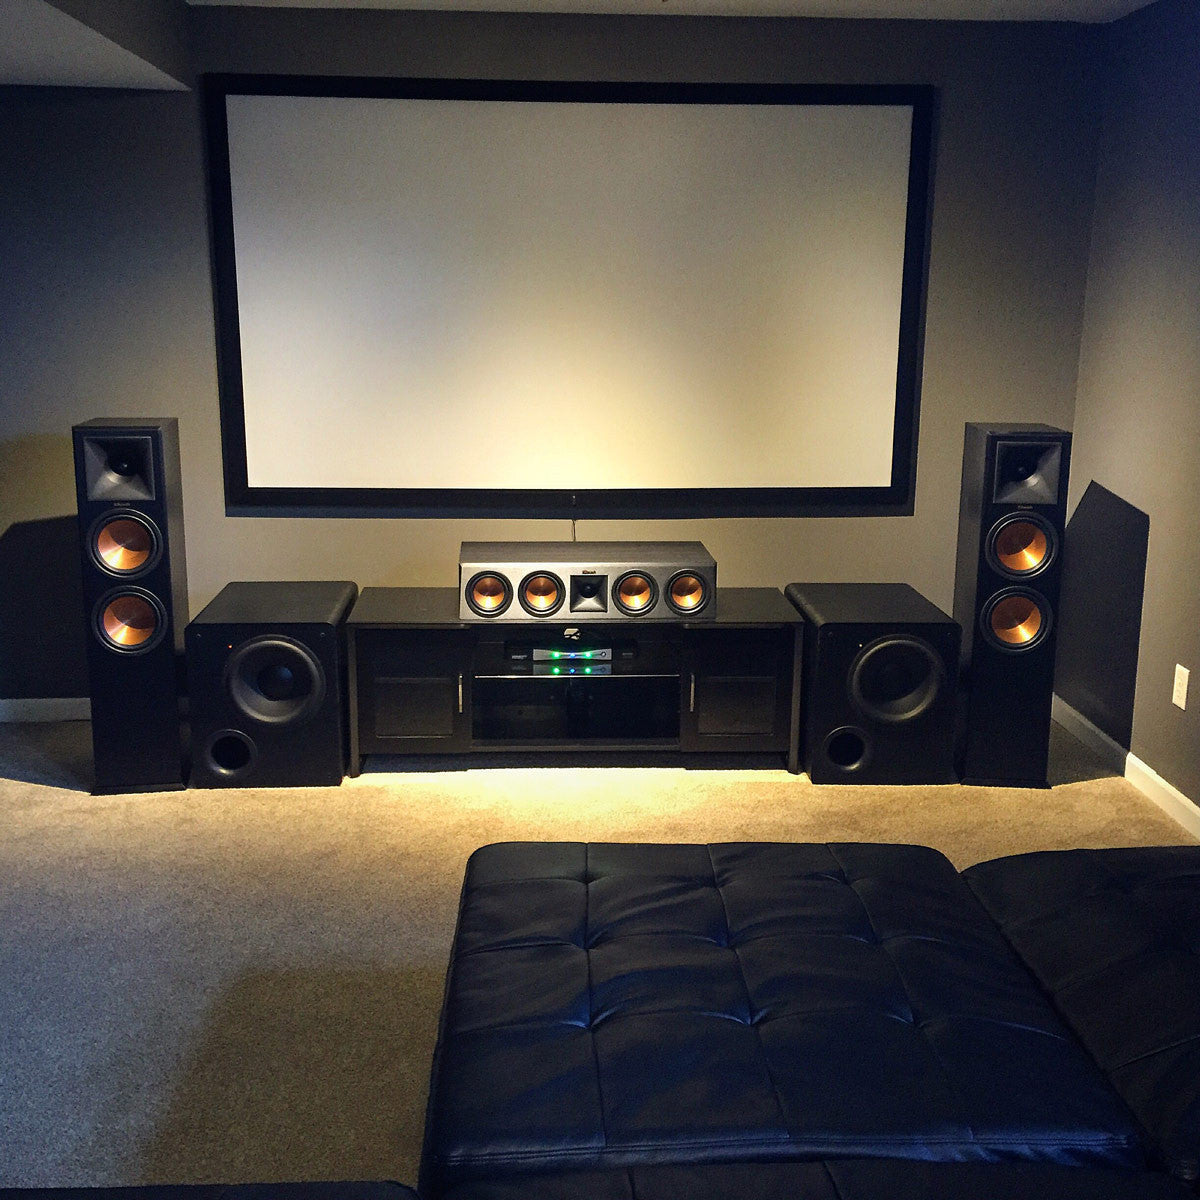 Featured Home Theater System: Jermaine in St. Louis, MO